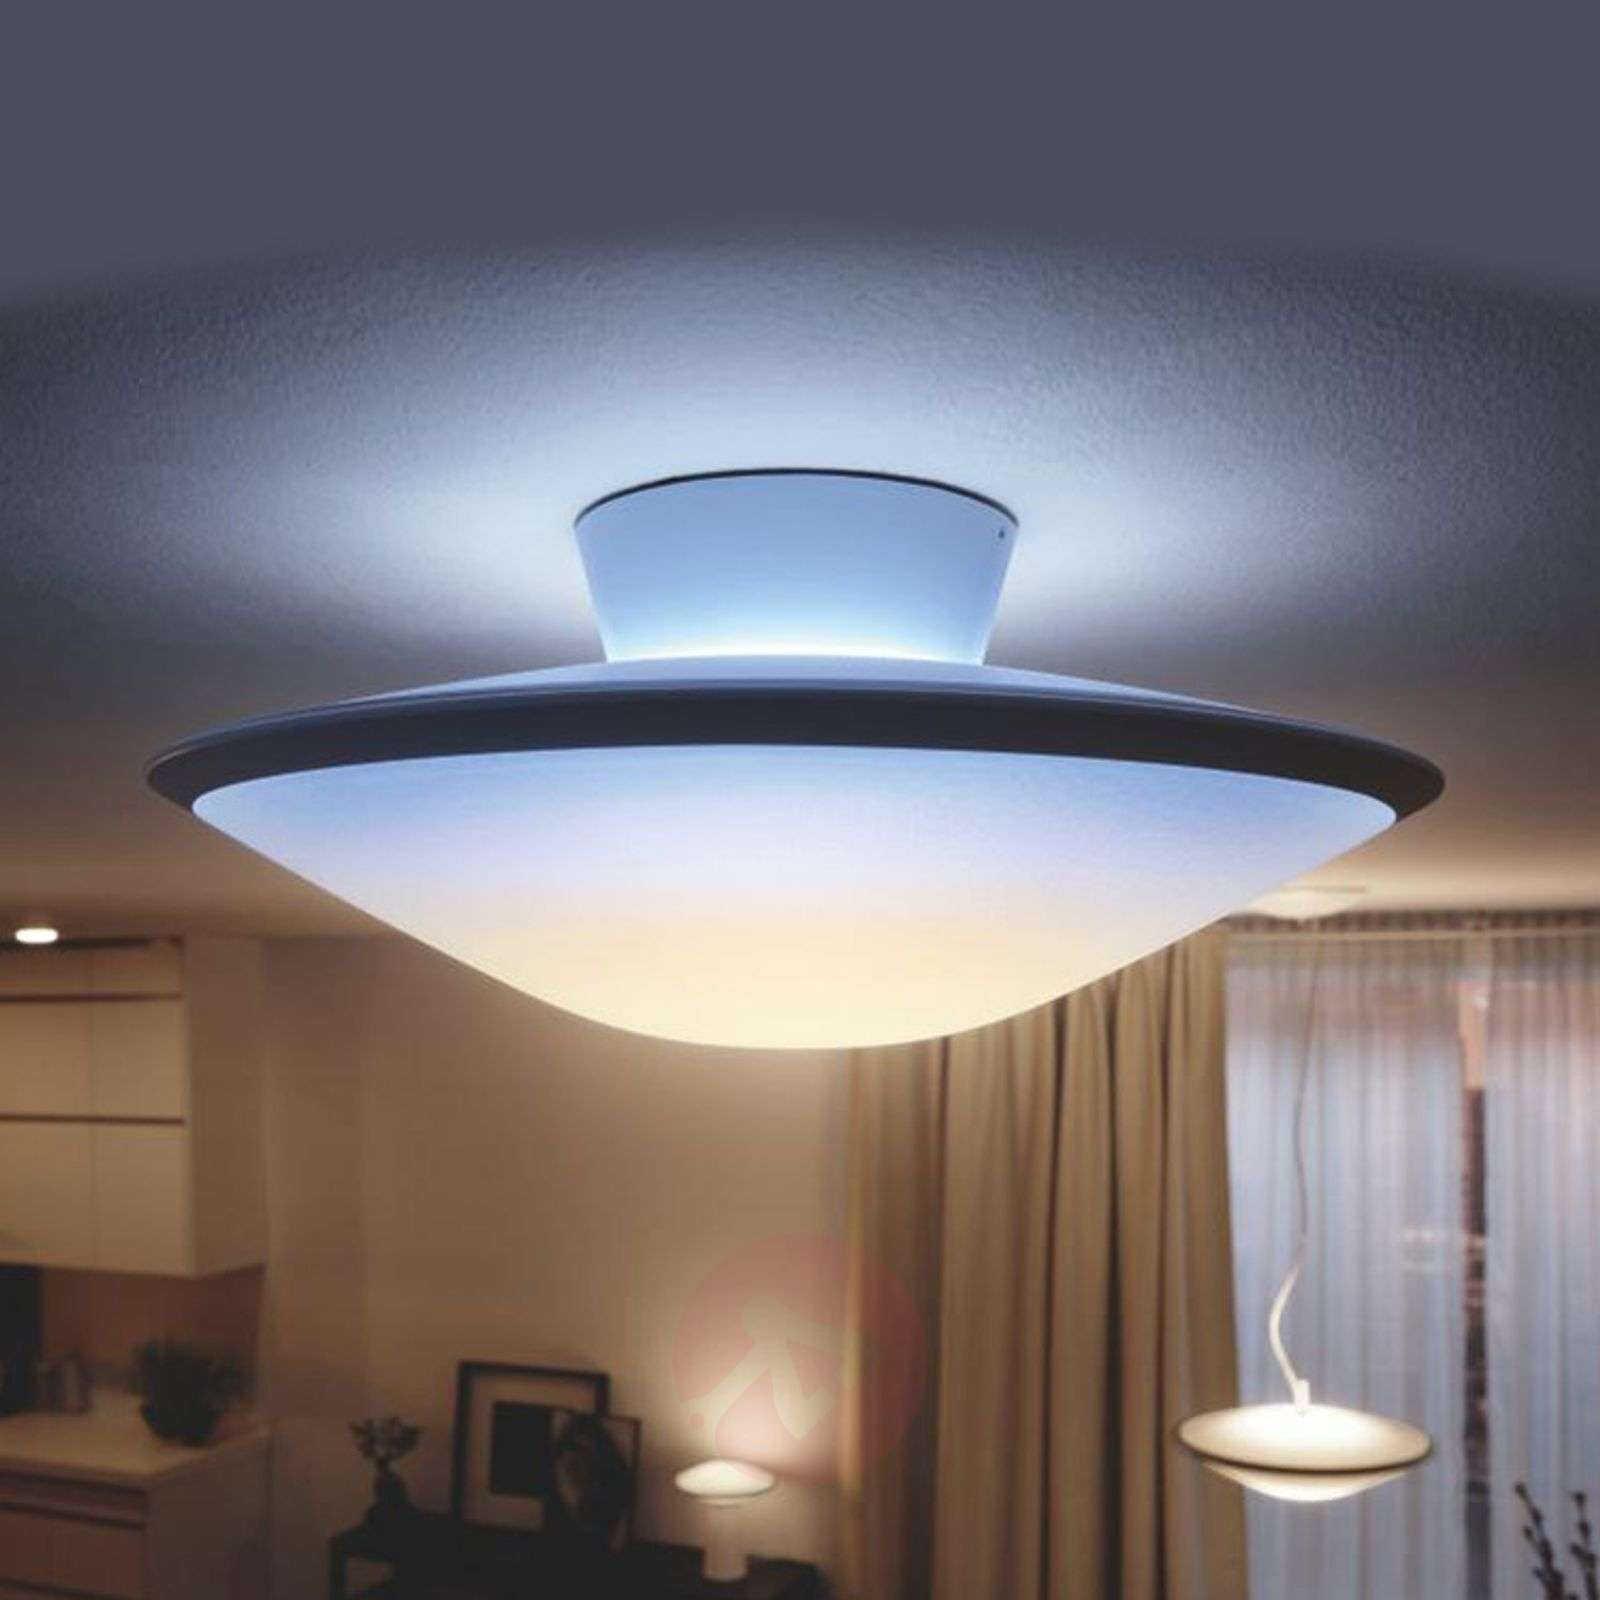 Ceiling Light Philips Hue Phoenix White Ambiance Lights Ie